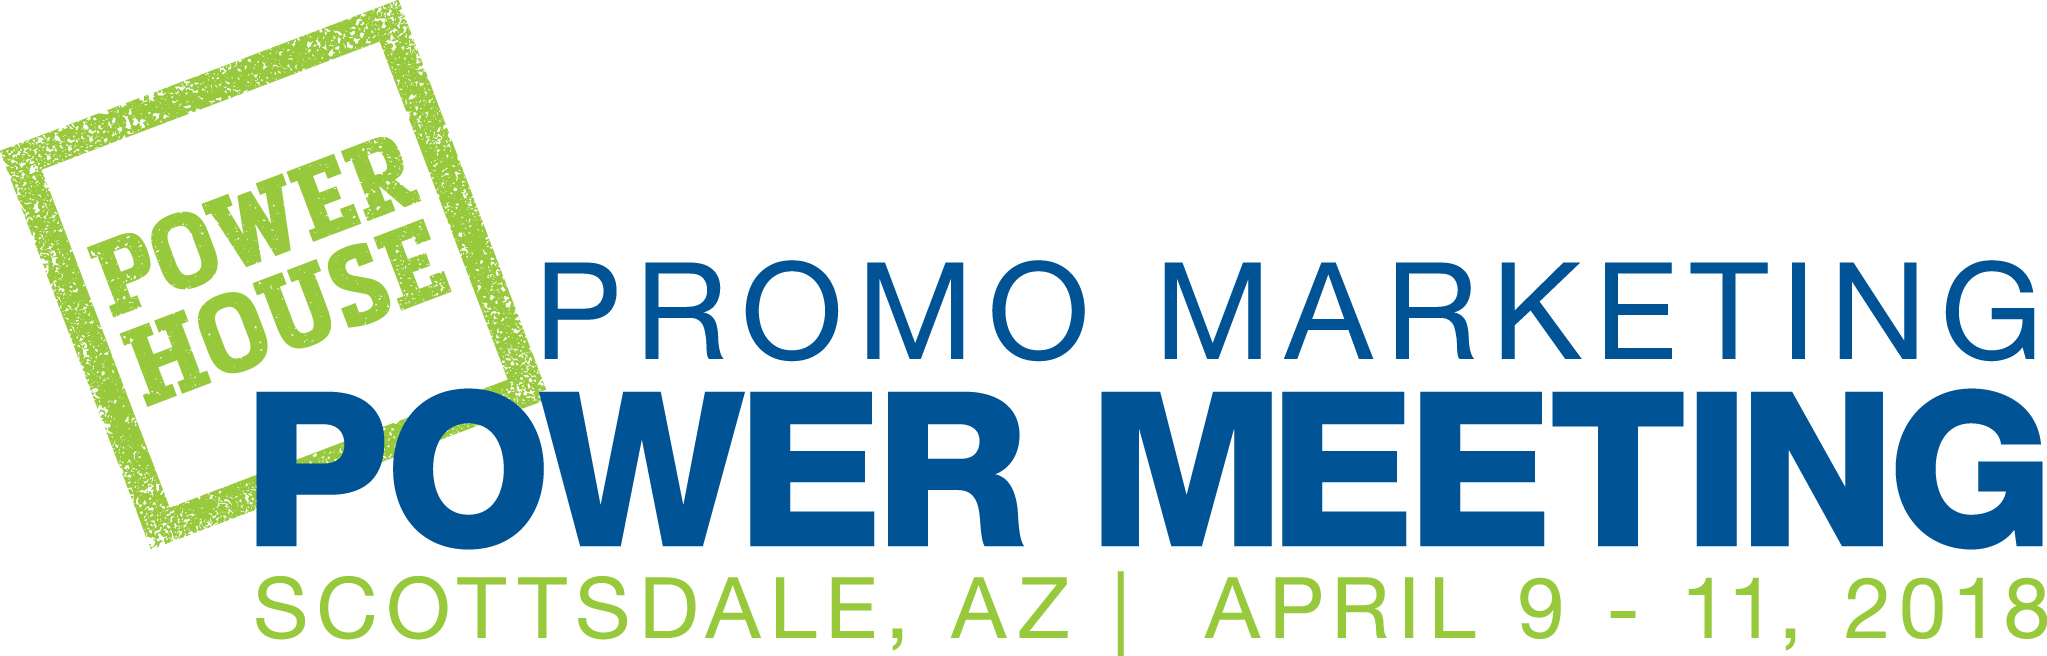 Power House Power Meeting | Phoenix | April 2018